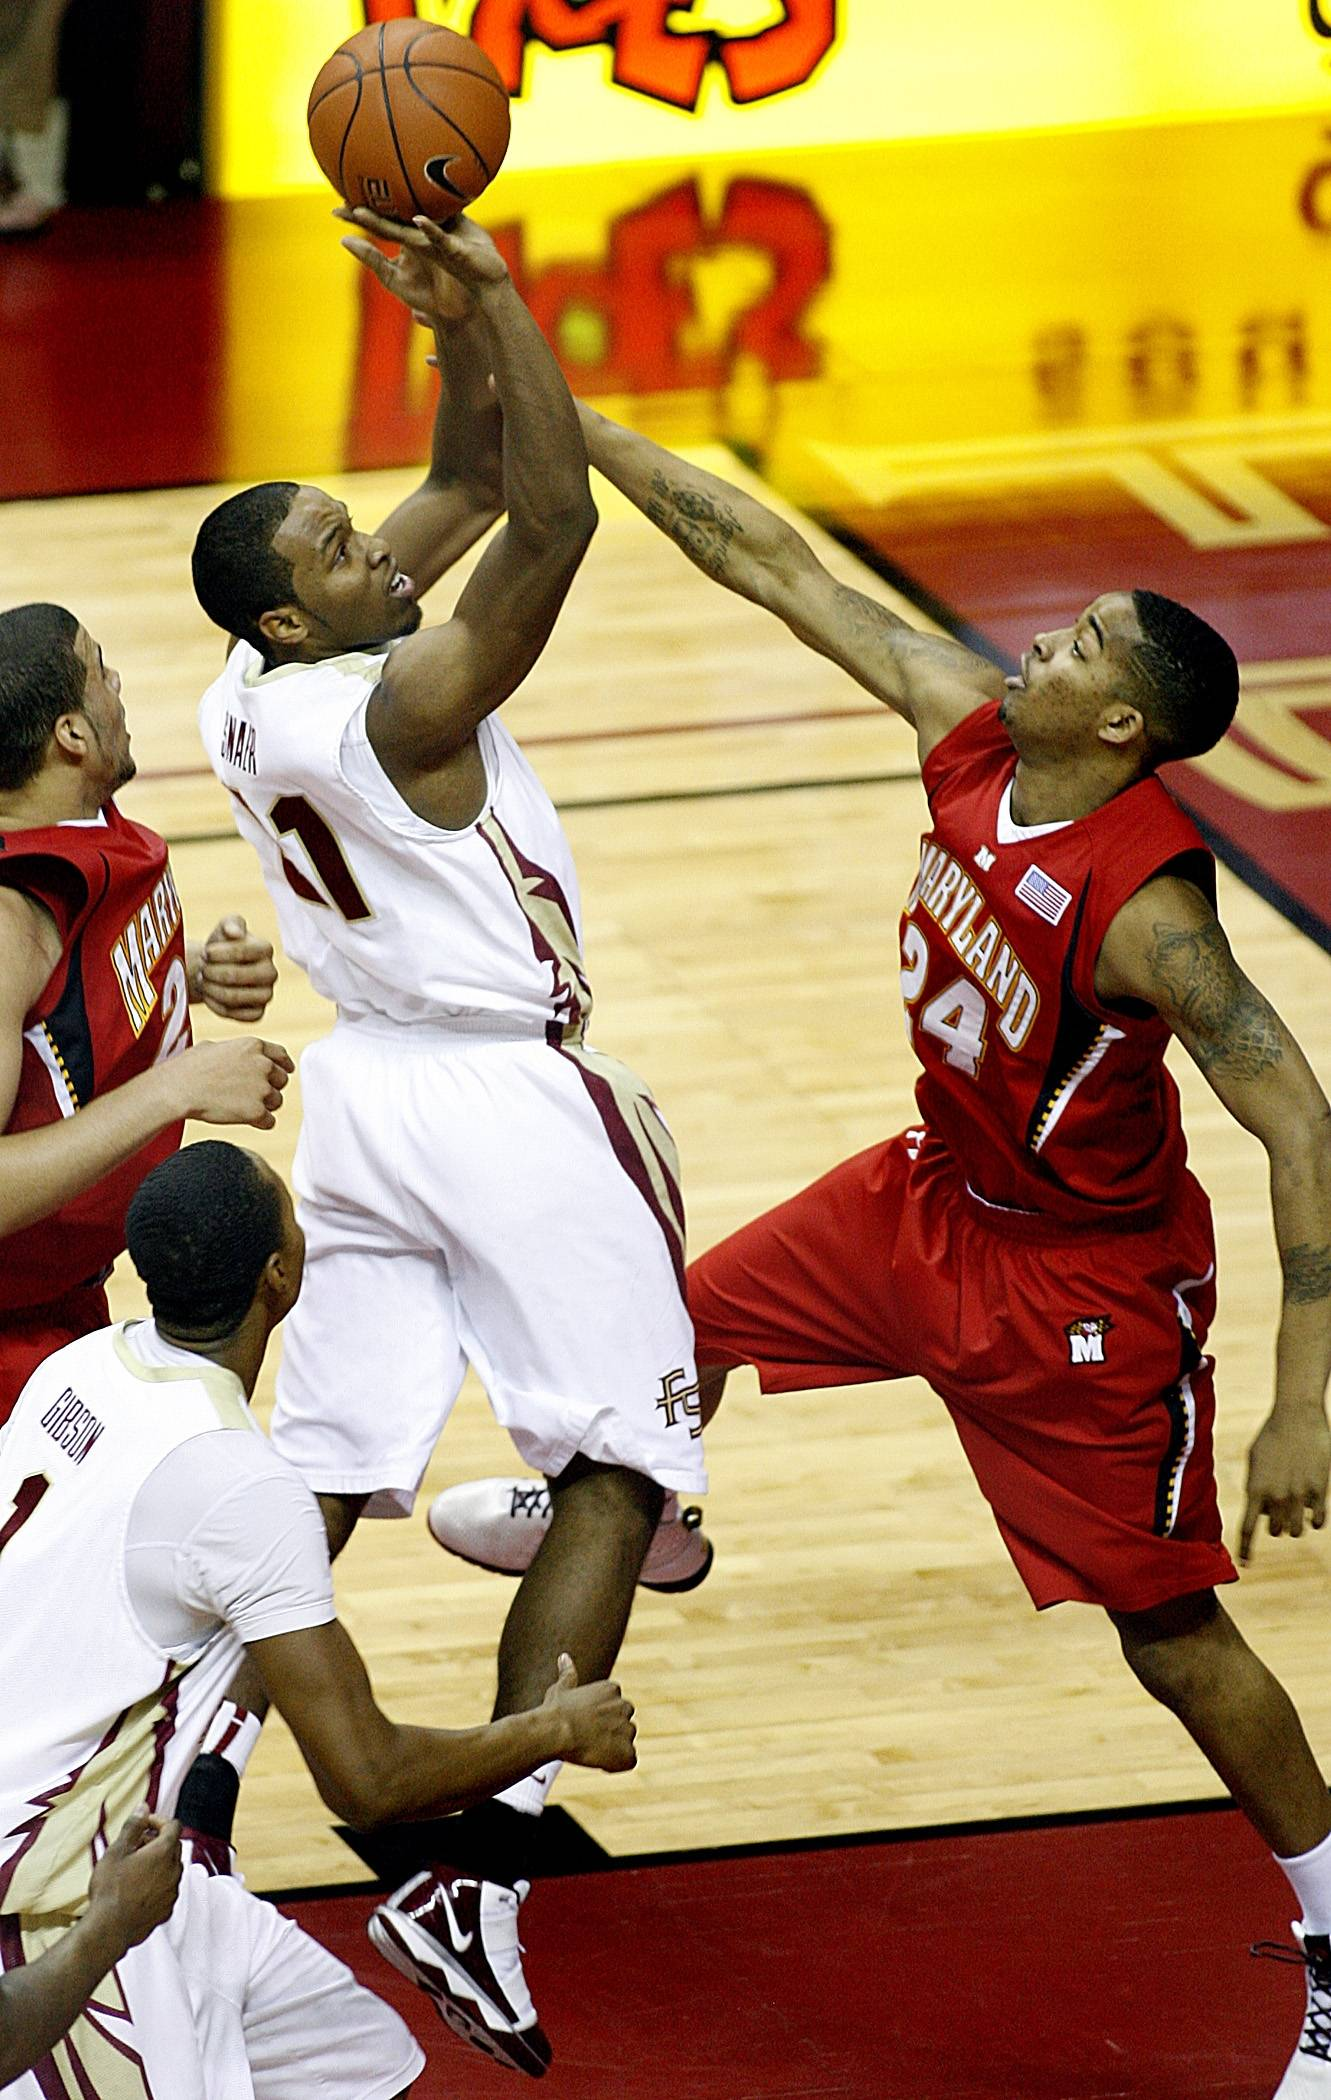 Florida State's Michael Snaer, left, shoots over Maryland's Cliff Tucker, right, during an NCAA college basketball game in Tallahassee, Fla., on Thursday, Feb. 4, 2010. (AP Photo/Tallahassee Democrat, Glenn Beil)